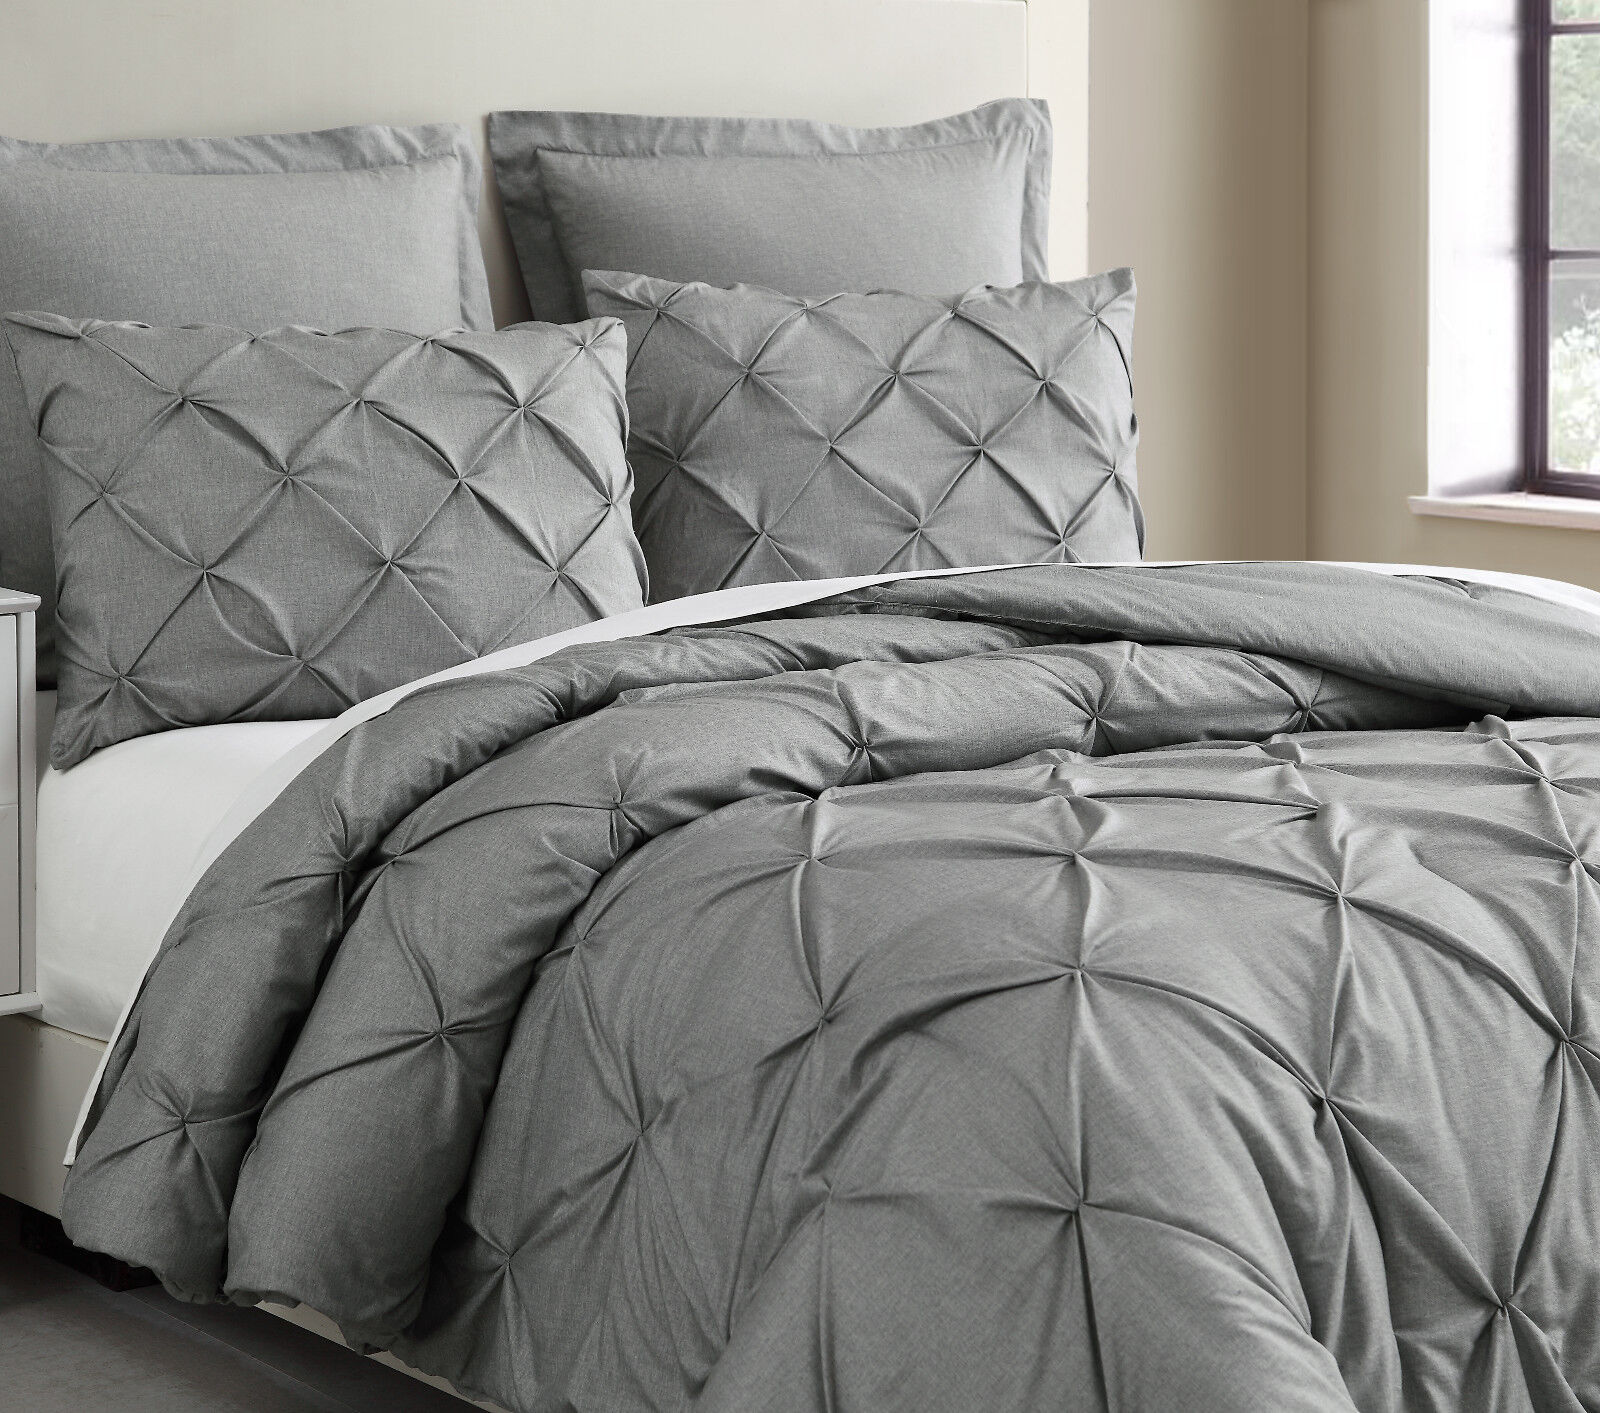 Pinch Pleat Light Grey Comforter Set Pintuch Bed Cover for A